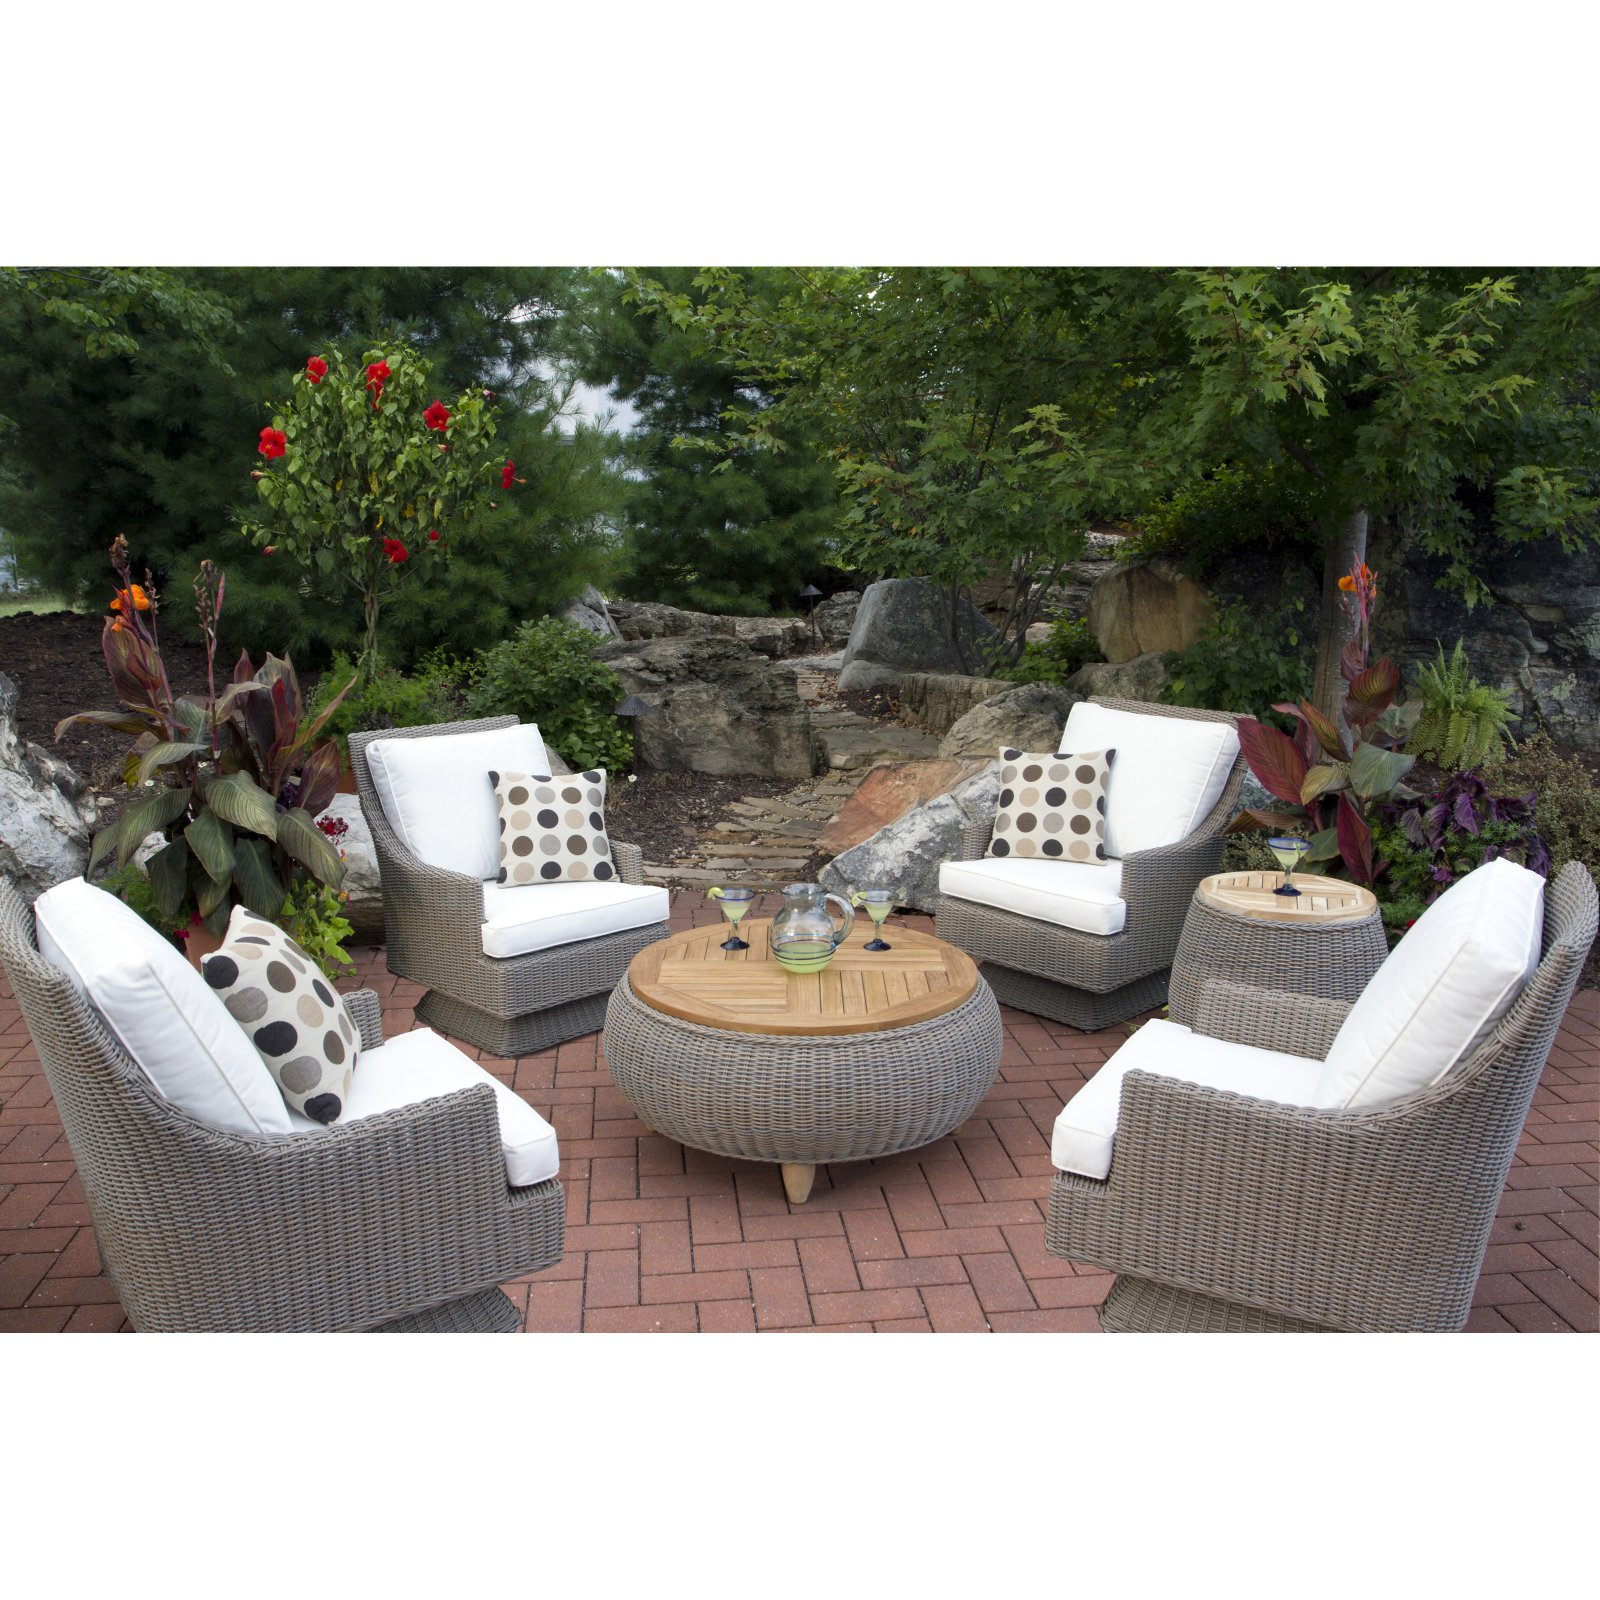 Padma's Plantation Cayman Islands 7 Piece Patio Conversat...